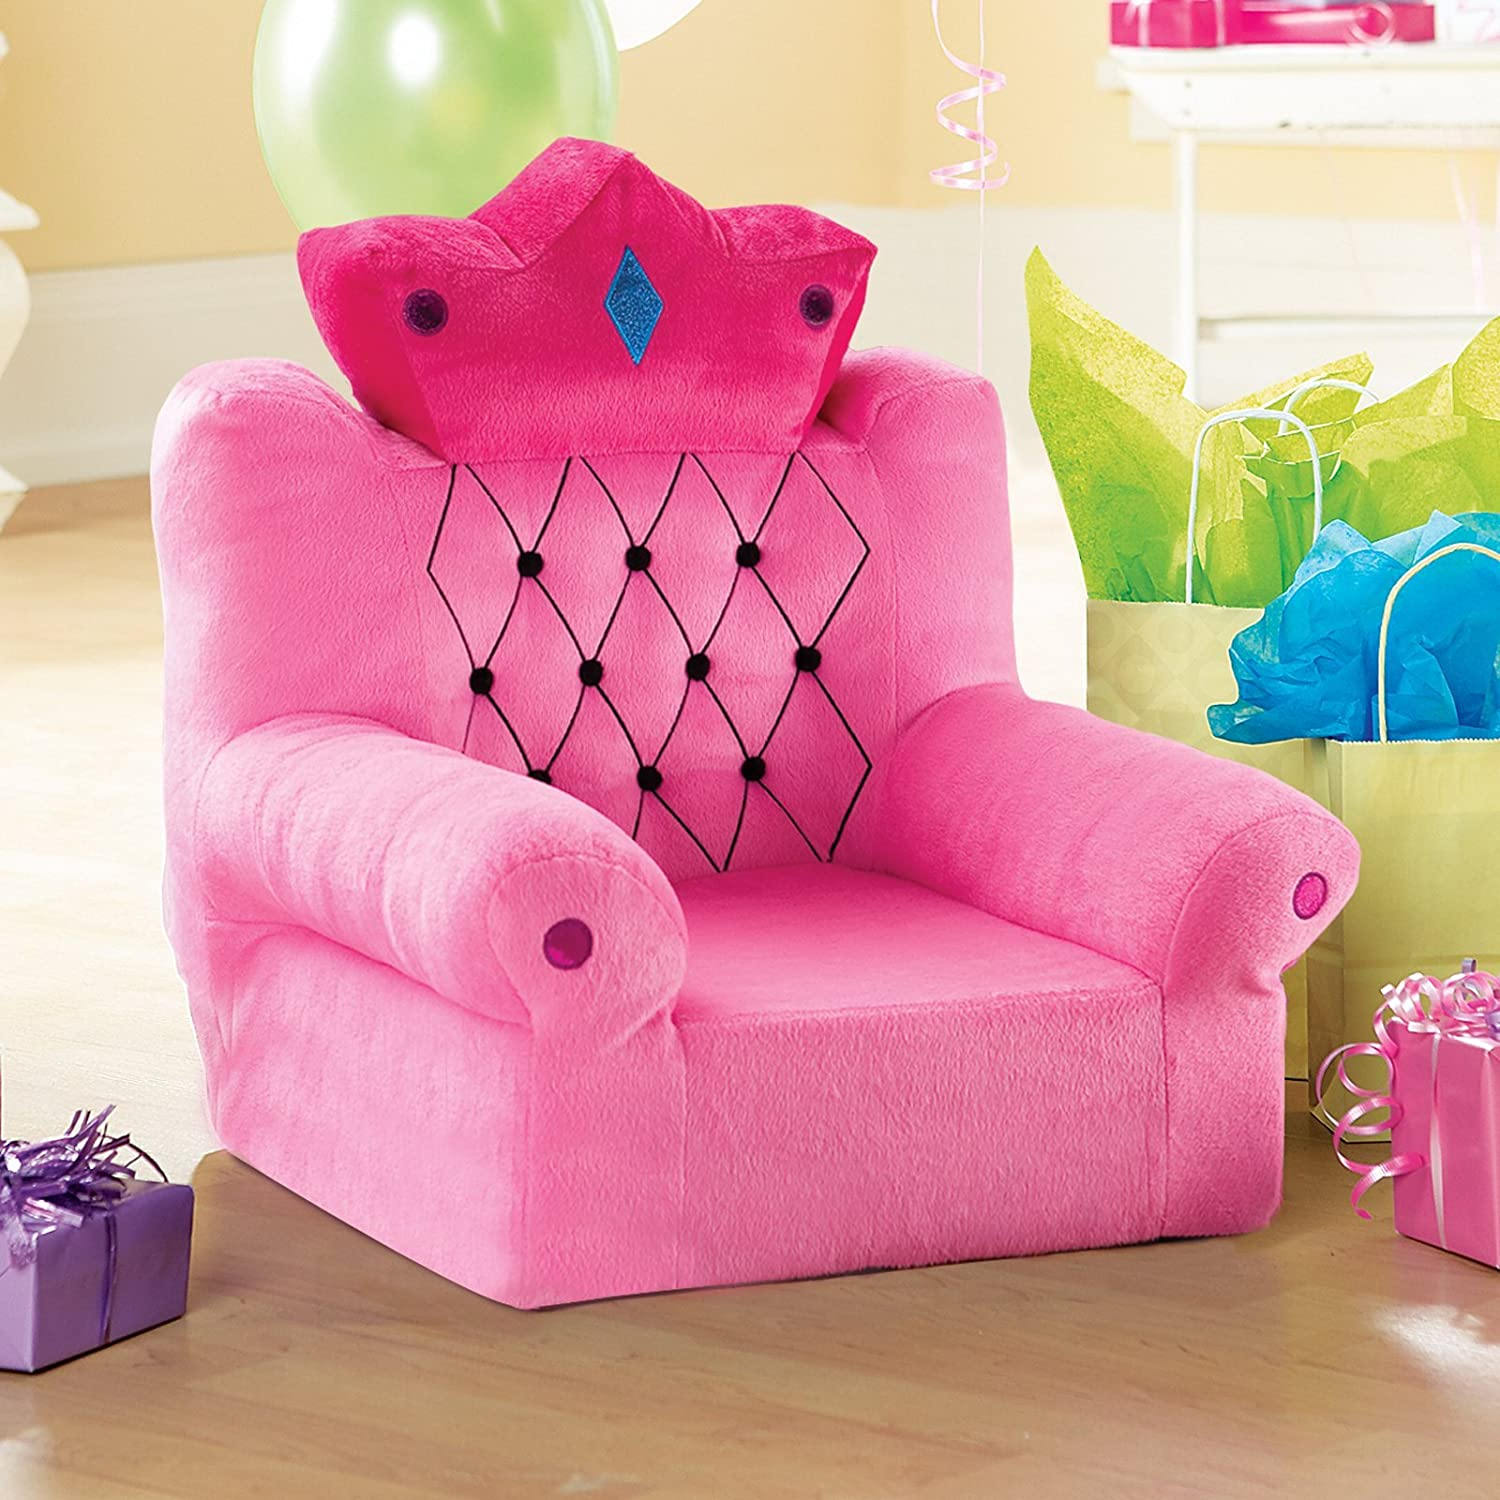 Princess Chairs For Toddlers Unique Children 39s Chairs For Girls